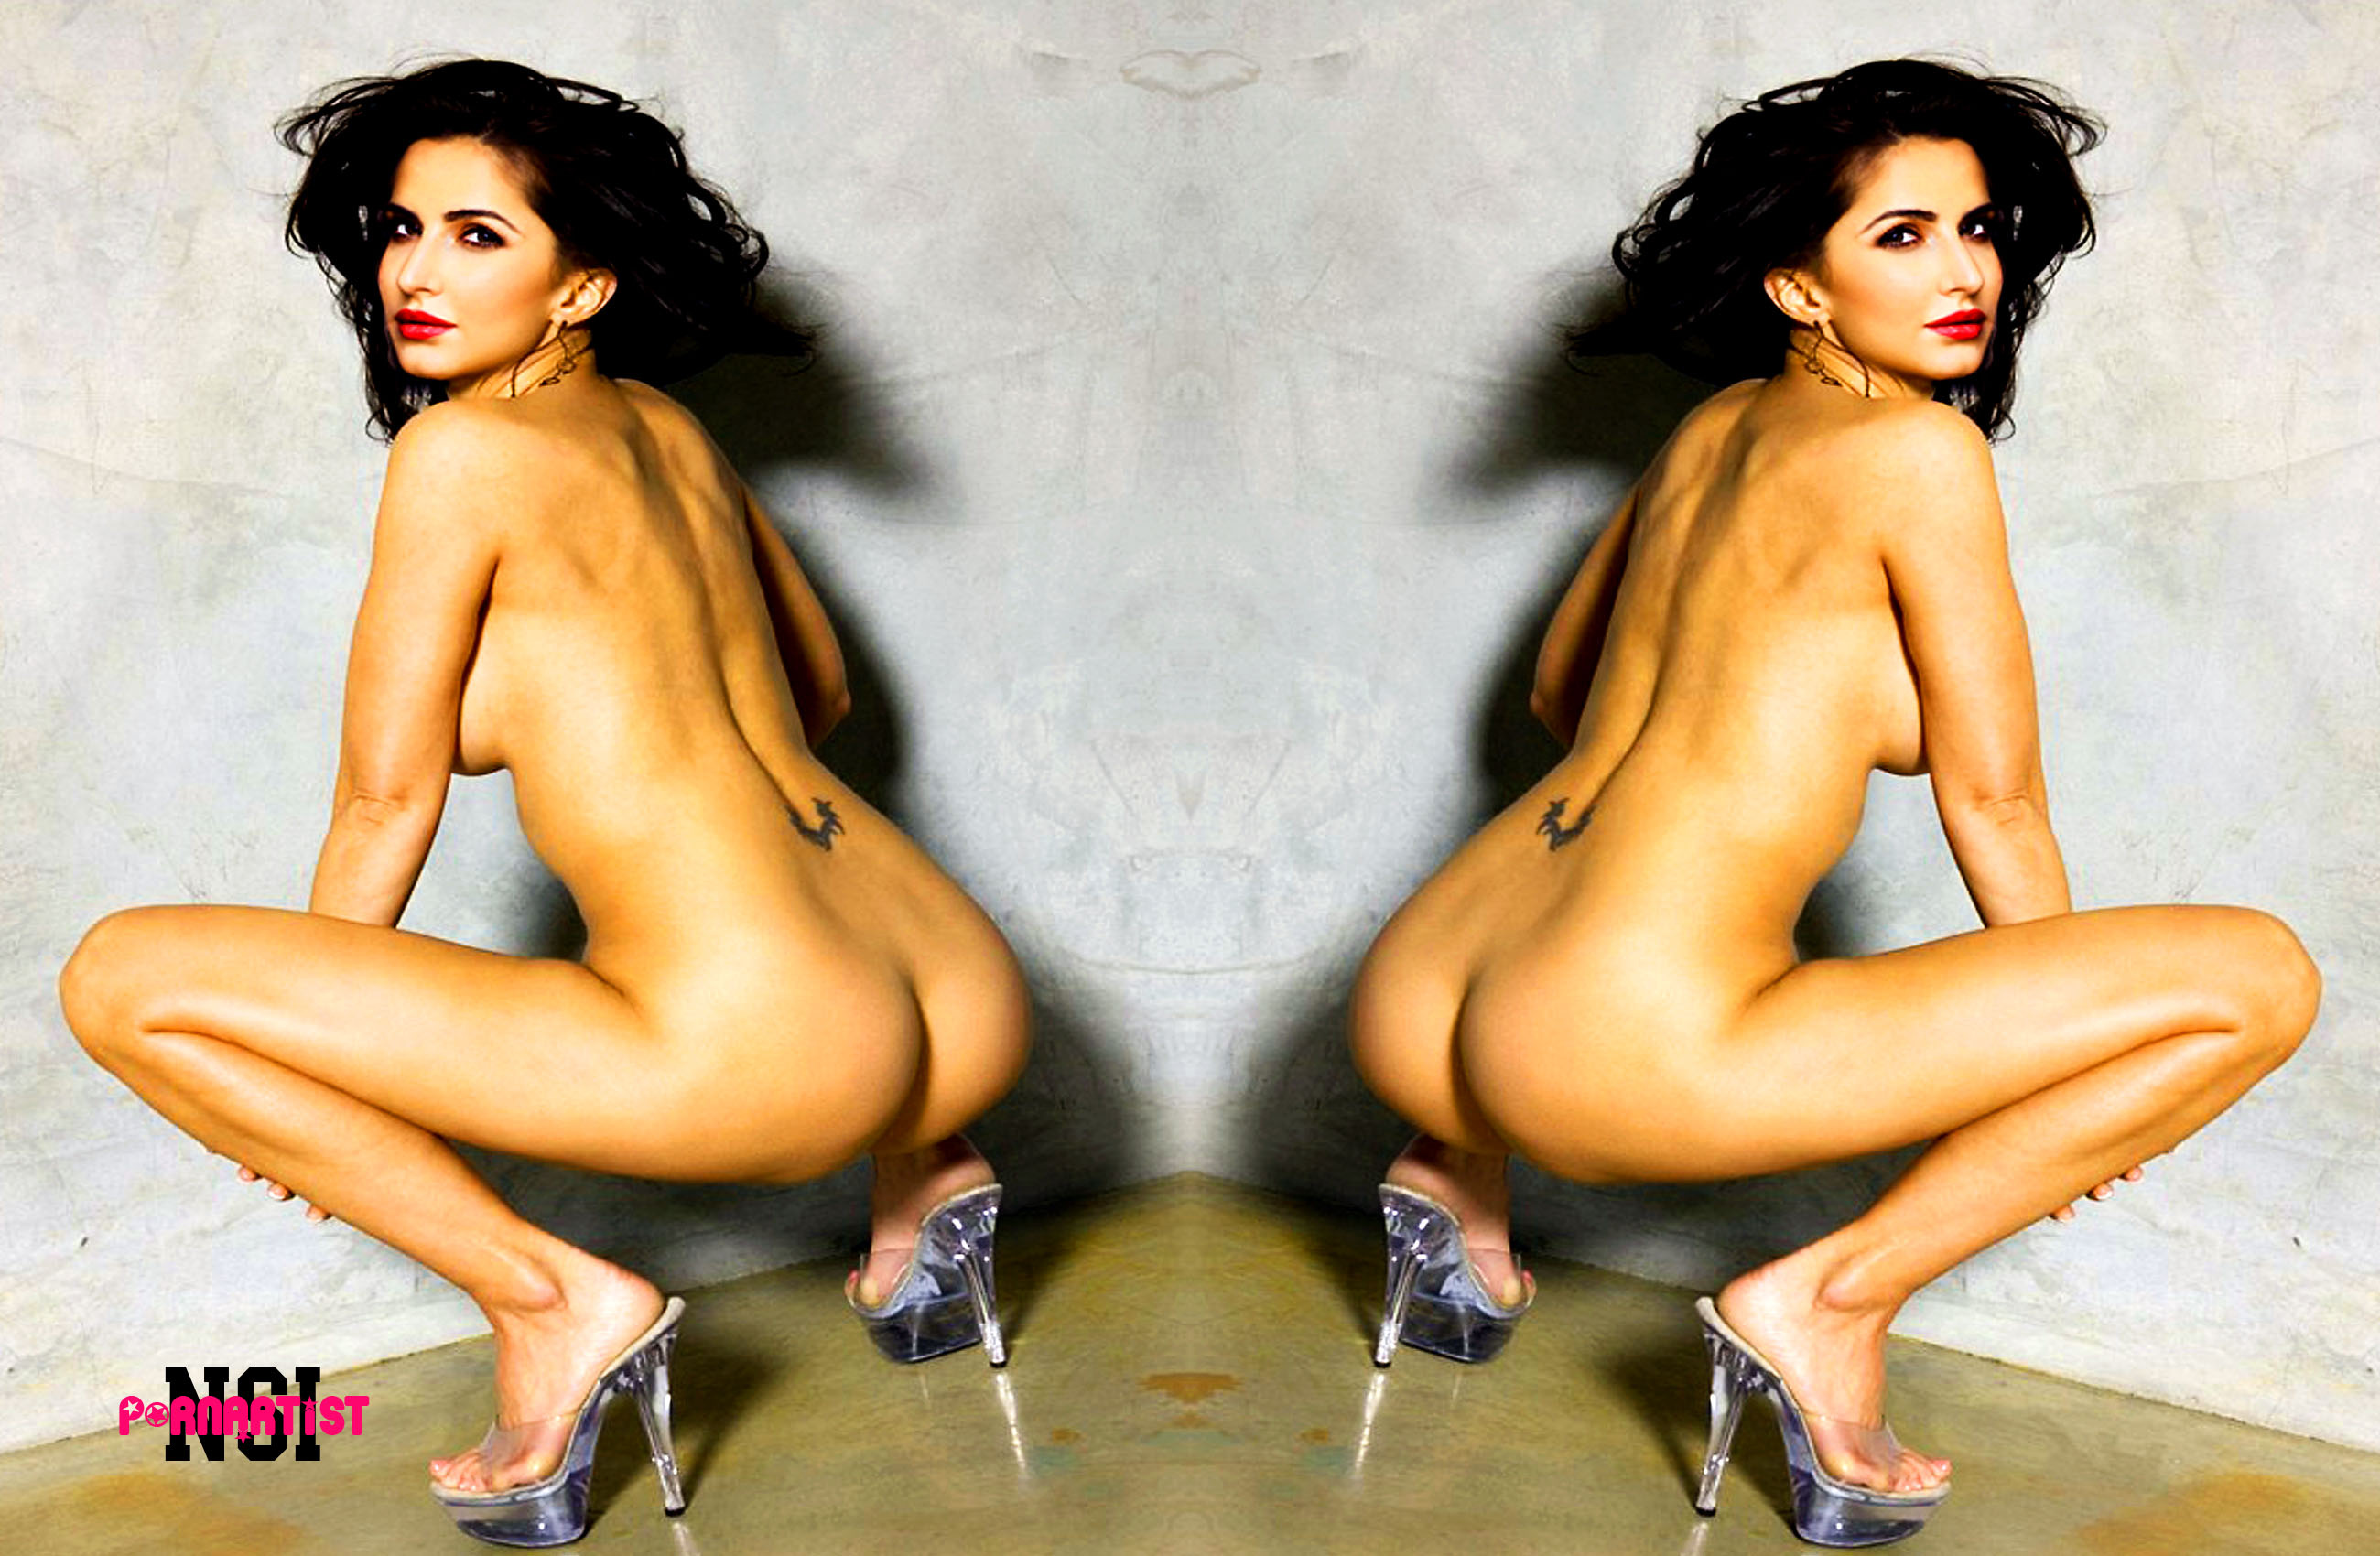 Naked woman on stairs